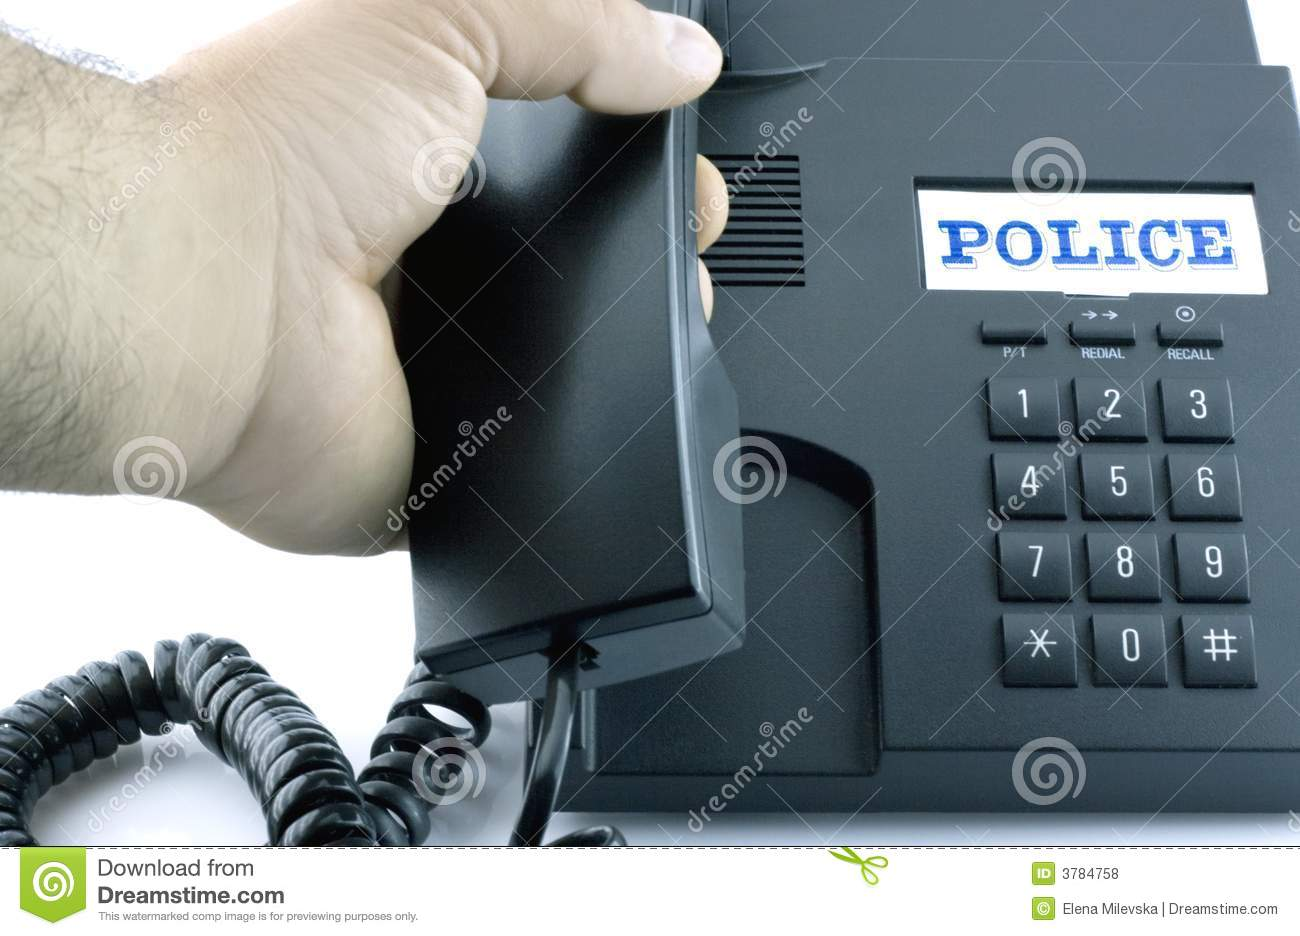 Phone for an emergency call